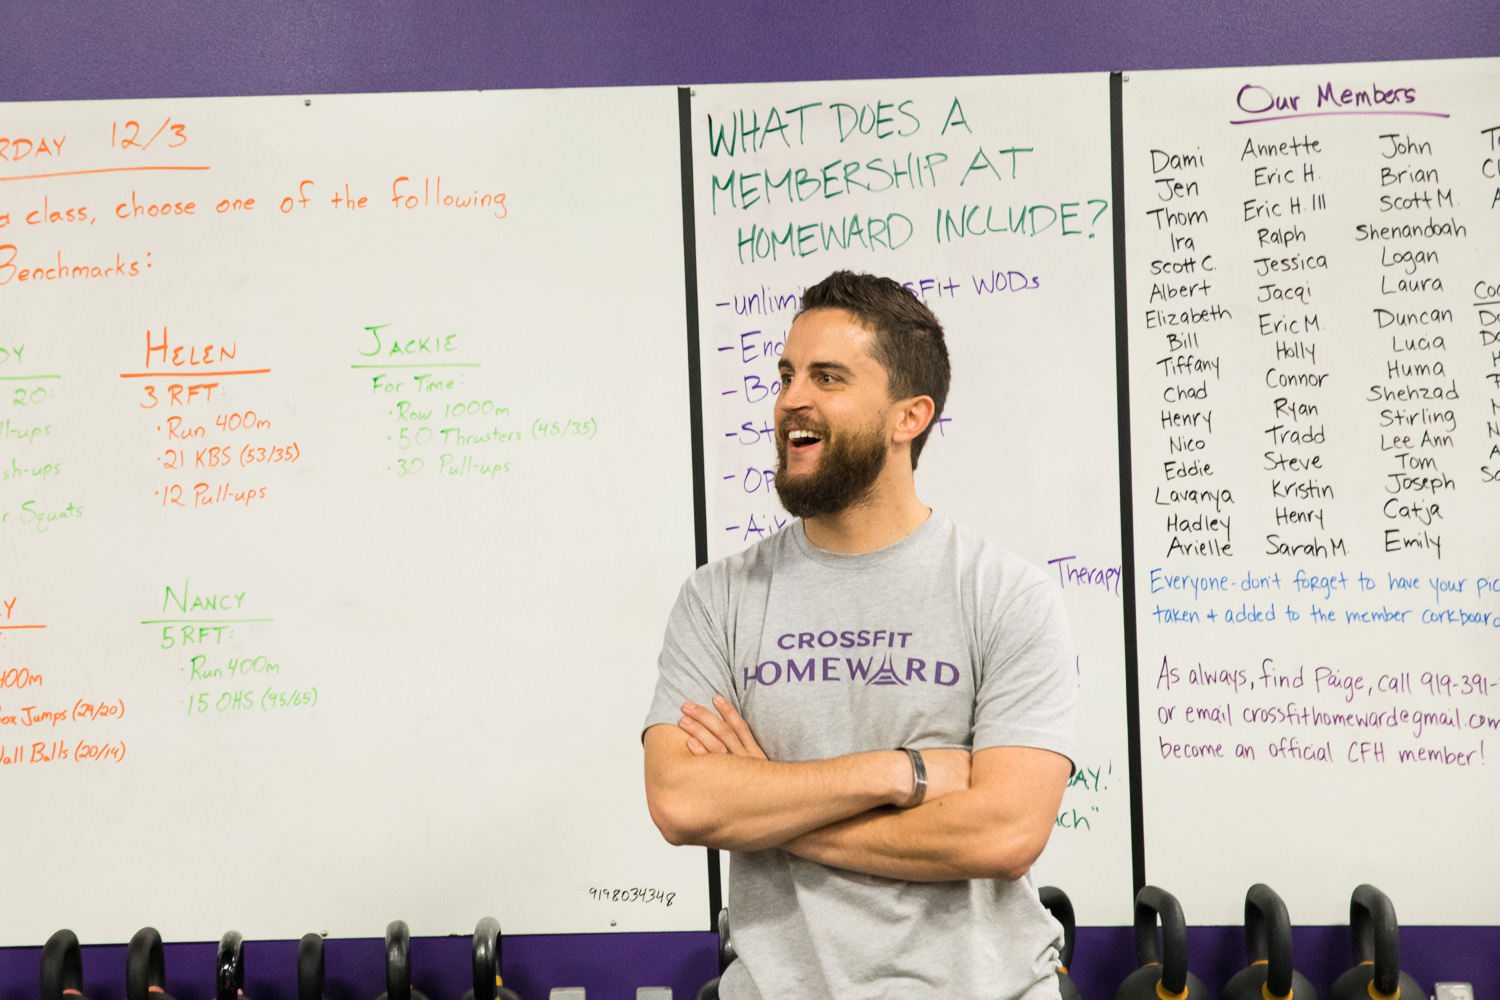 CrossFit Homeward offers depth and breadth in its coaching staff expertise and workout programming